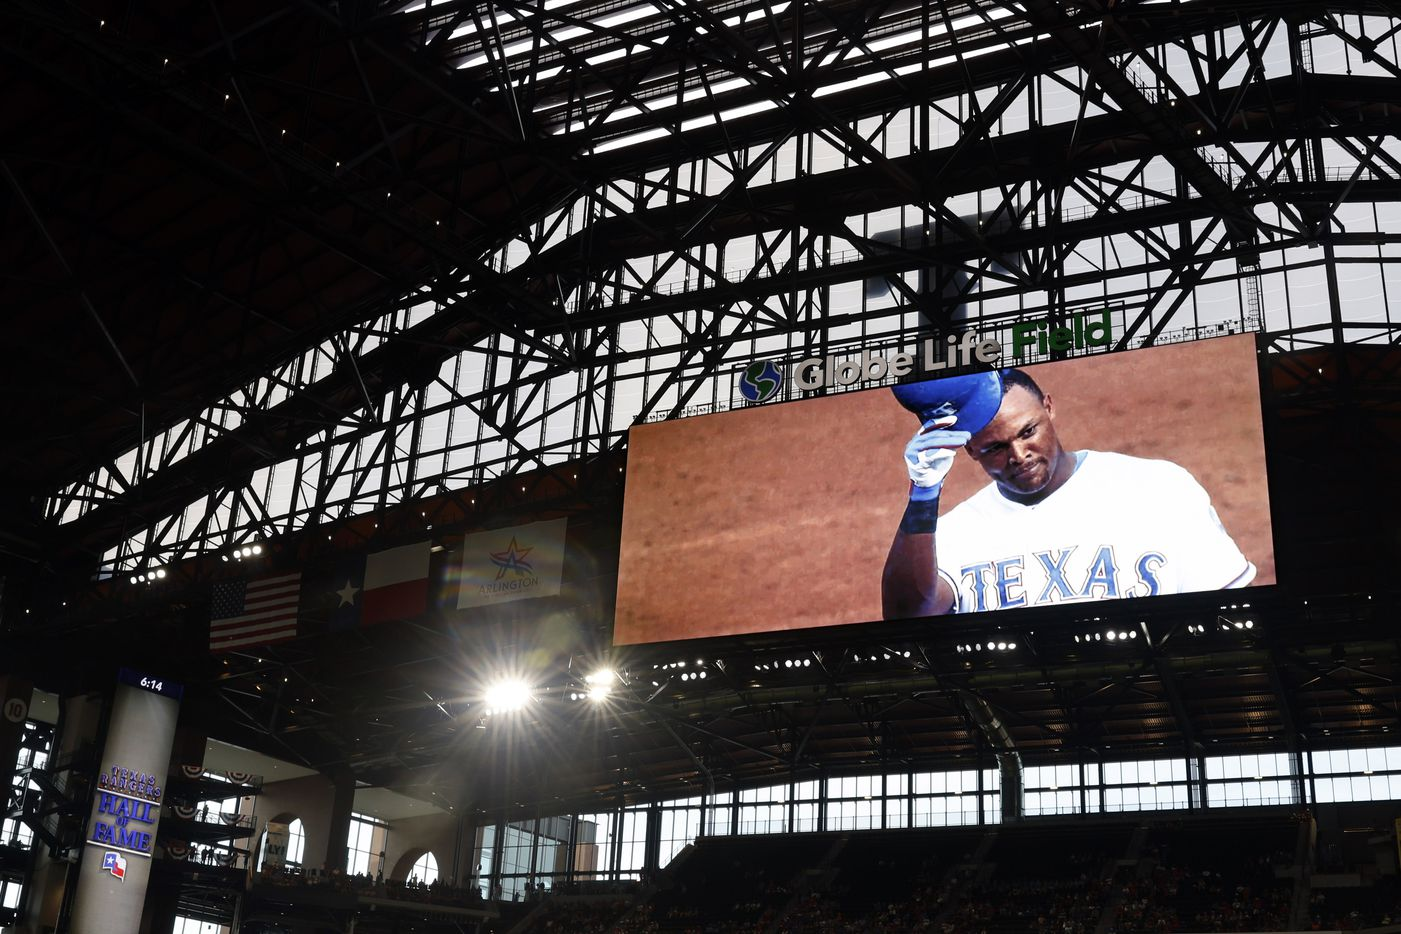 A tribute video plays of former Texas Rangers third basemen Adrian Beltre during the Texas Rangers Baseball Hall of Fame induction ceremony at Globe Life Field in Arlington, Saturday, August 14, 2021.(Tom Fox/The Dallas Morning News)